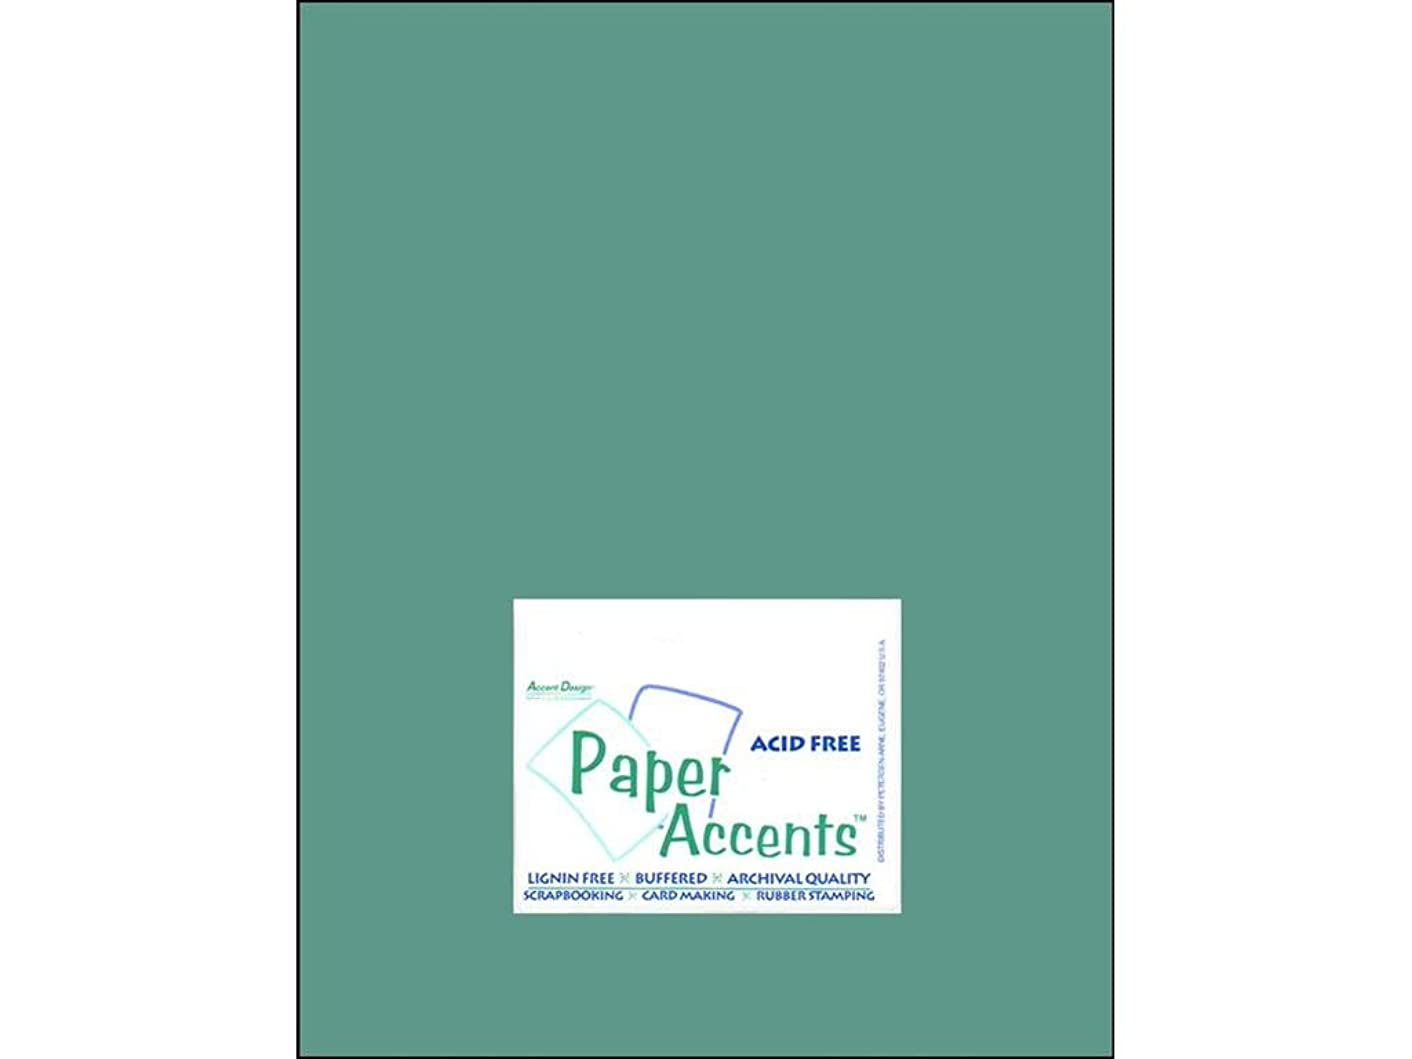 Accent Design Paper Accents Cdstk Muslin 8.5x11 74# Blue Oasis